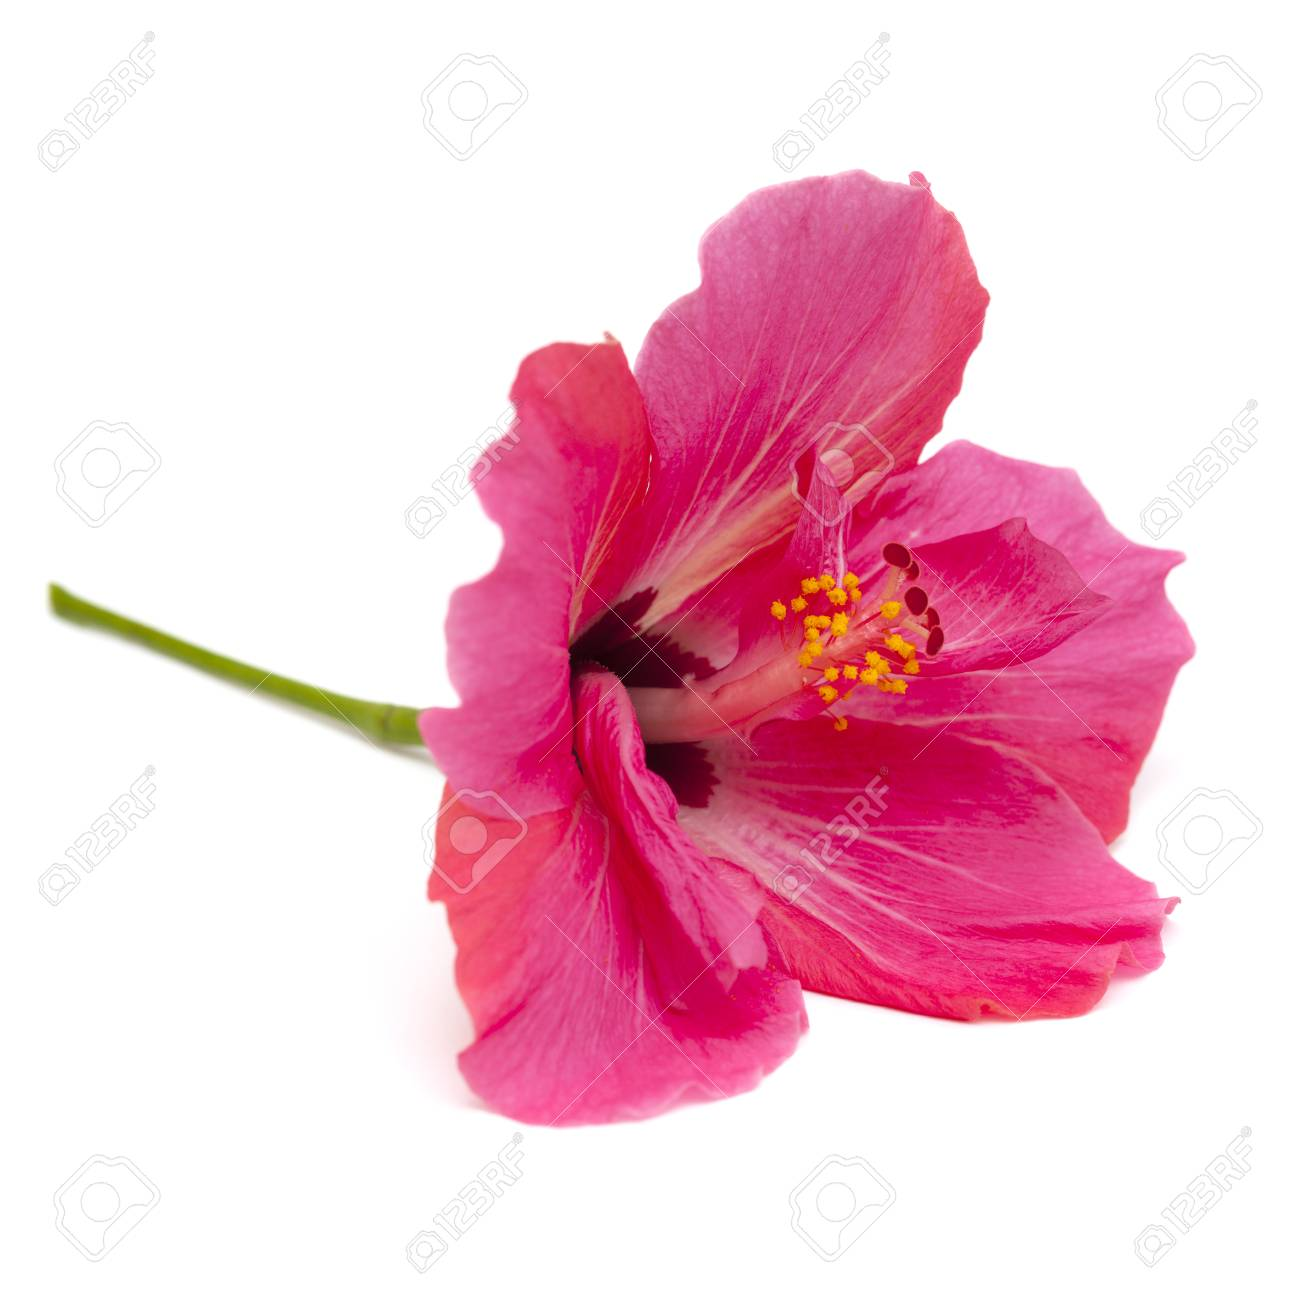 Single pink hibiscus flower isolated on white background stock photo single pink hibiscus flower isolated on white background stock photo 99752728 izmirmasajfo